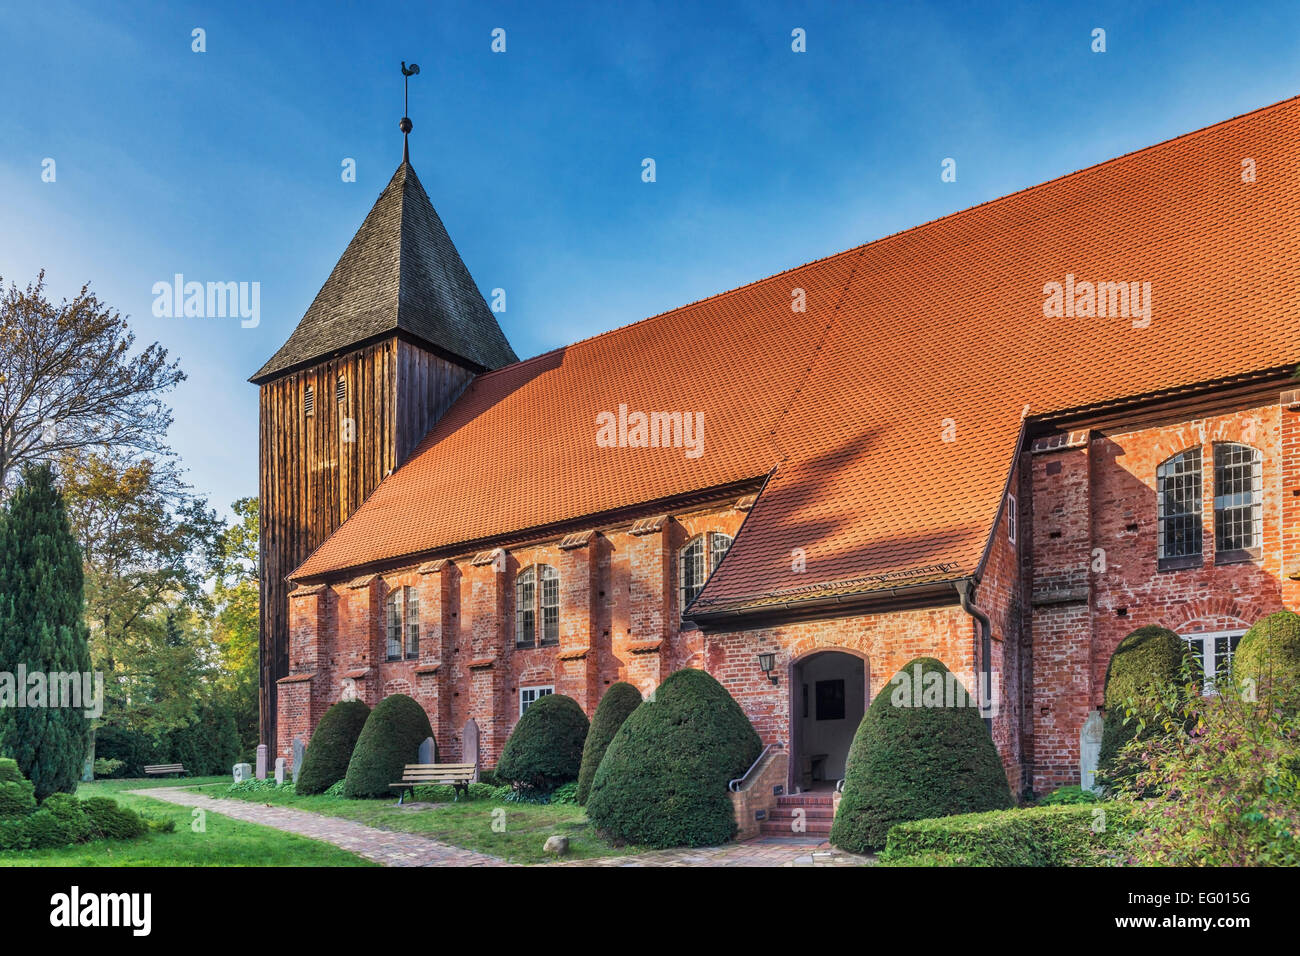 The Seamens Church Prerow was built from 1726 to 1728, Fischland-Darss-Zingst, Mecklenburg-Western Pomerania, Germany, Europe Stock Photo